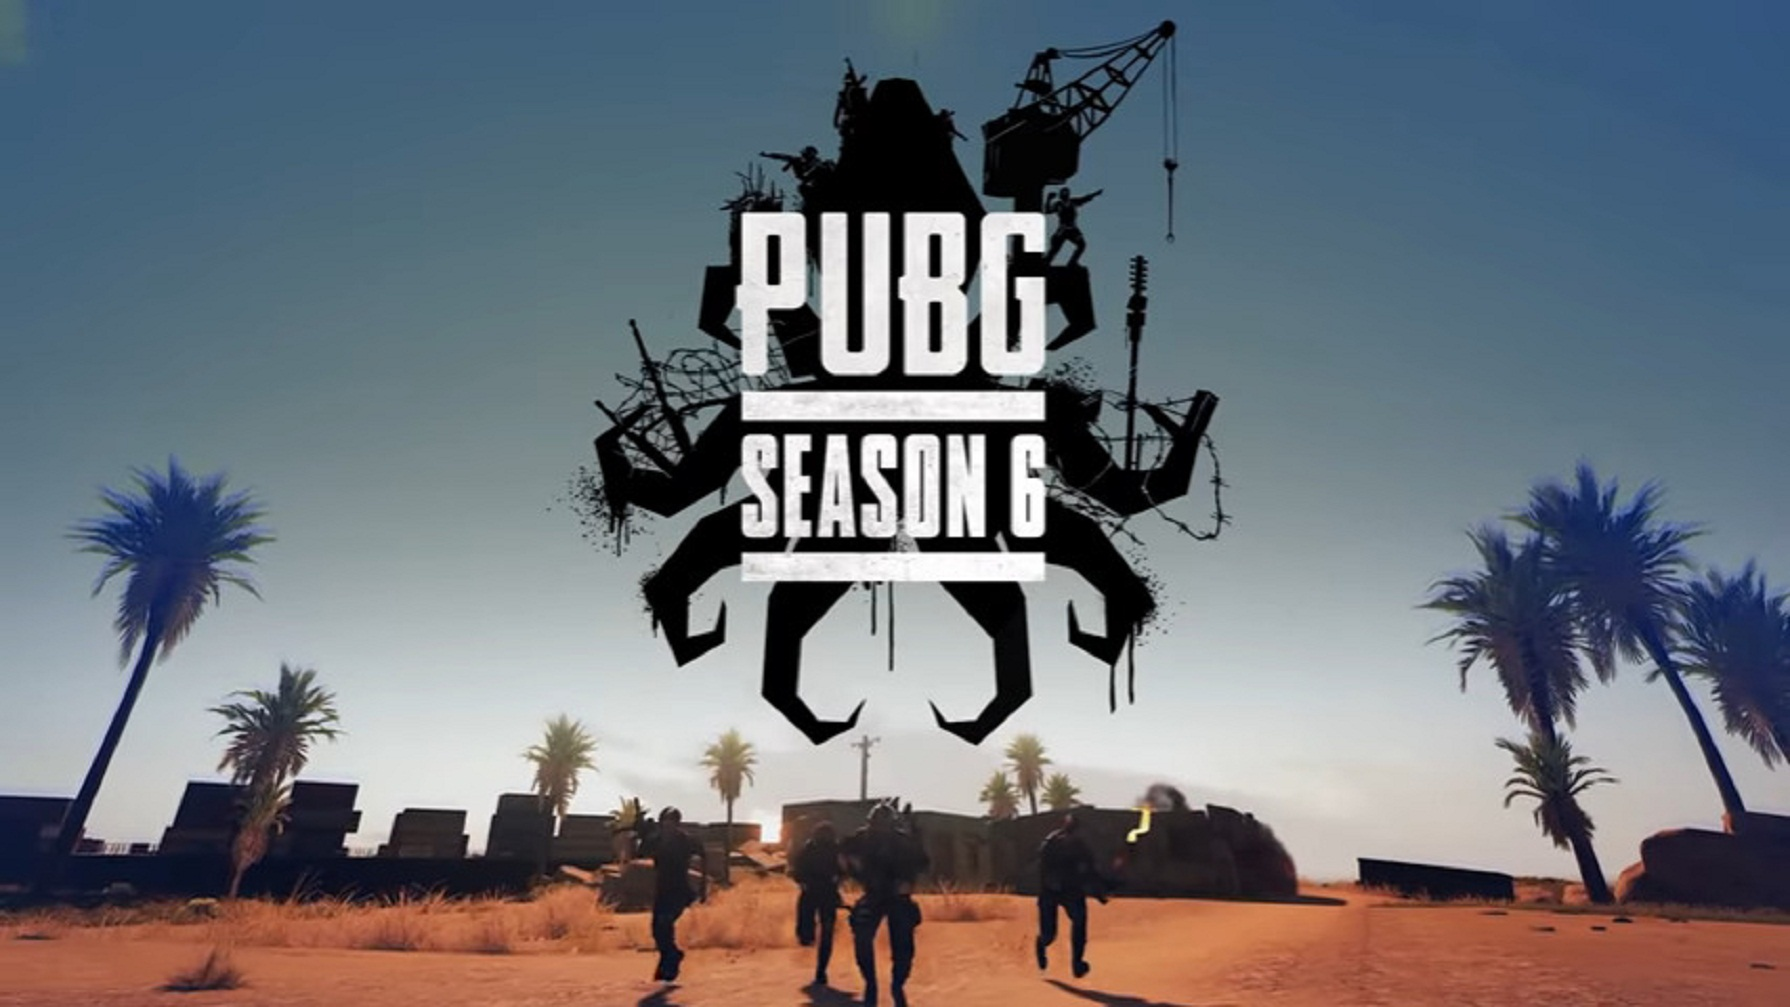 PUBG Releases Season 6 Gameplay Trailer With Details On The Destructible Map Of Karakin And A New Sticky Bomb